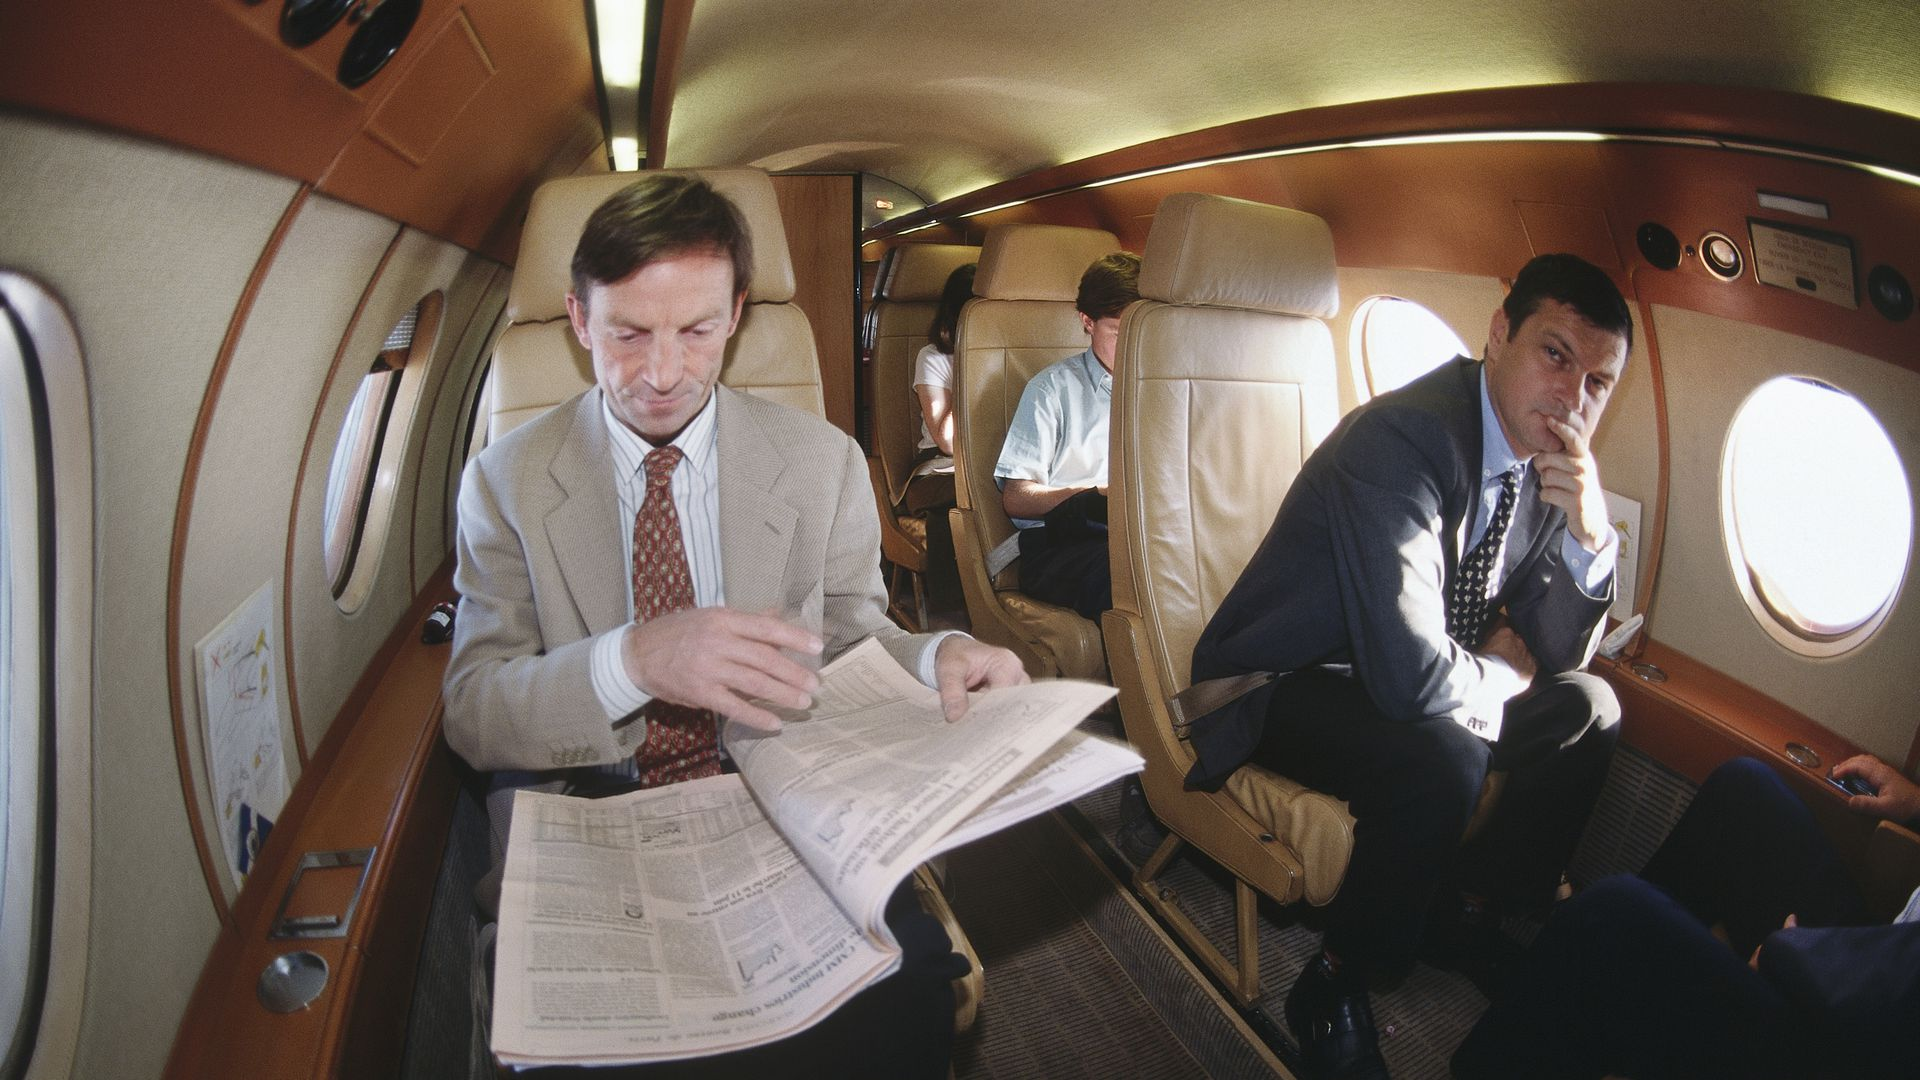 Man reading newspaper on private jet